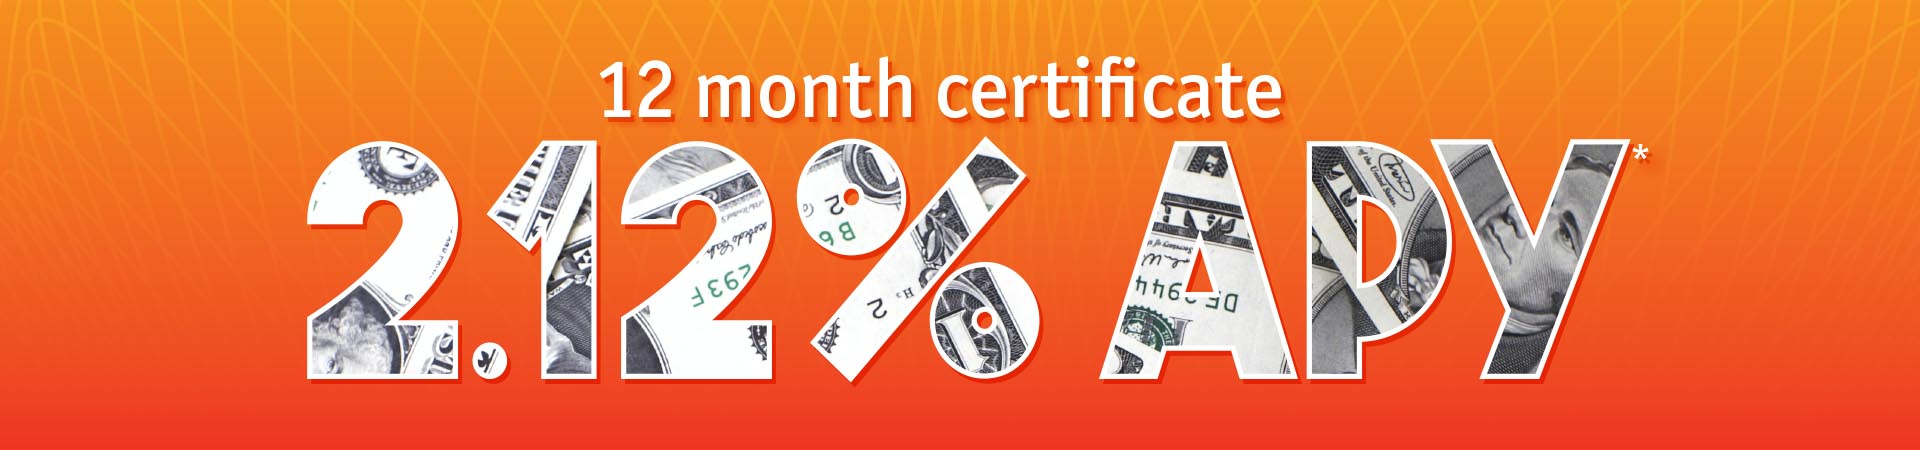 12 month certificate